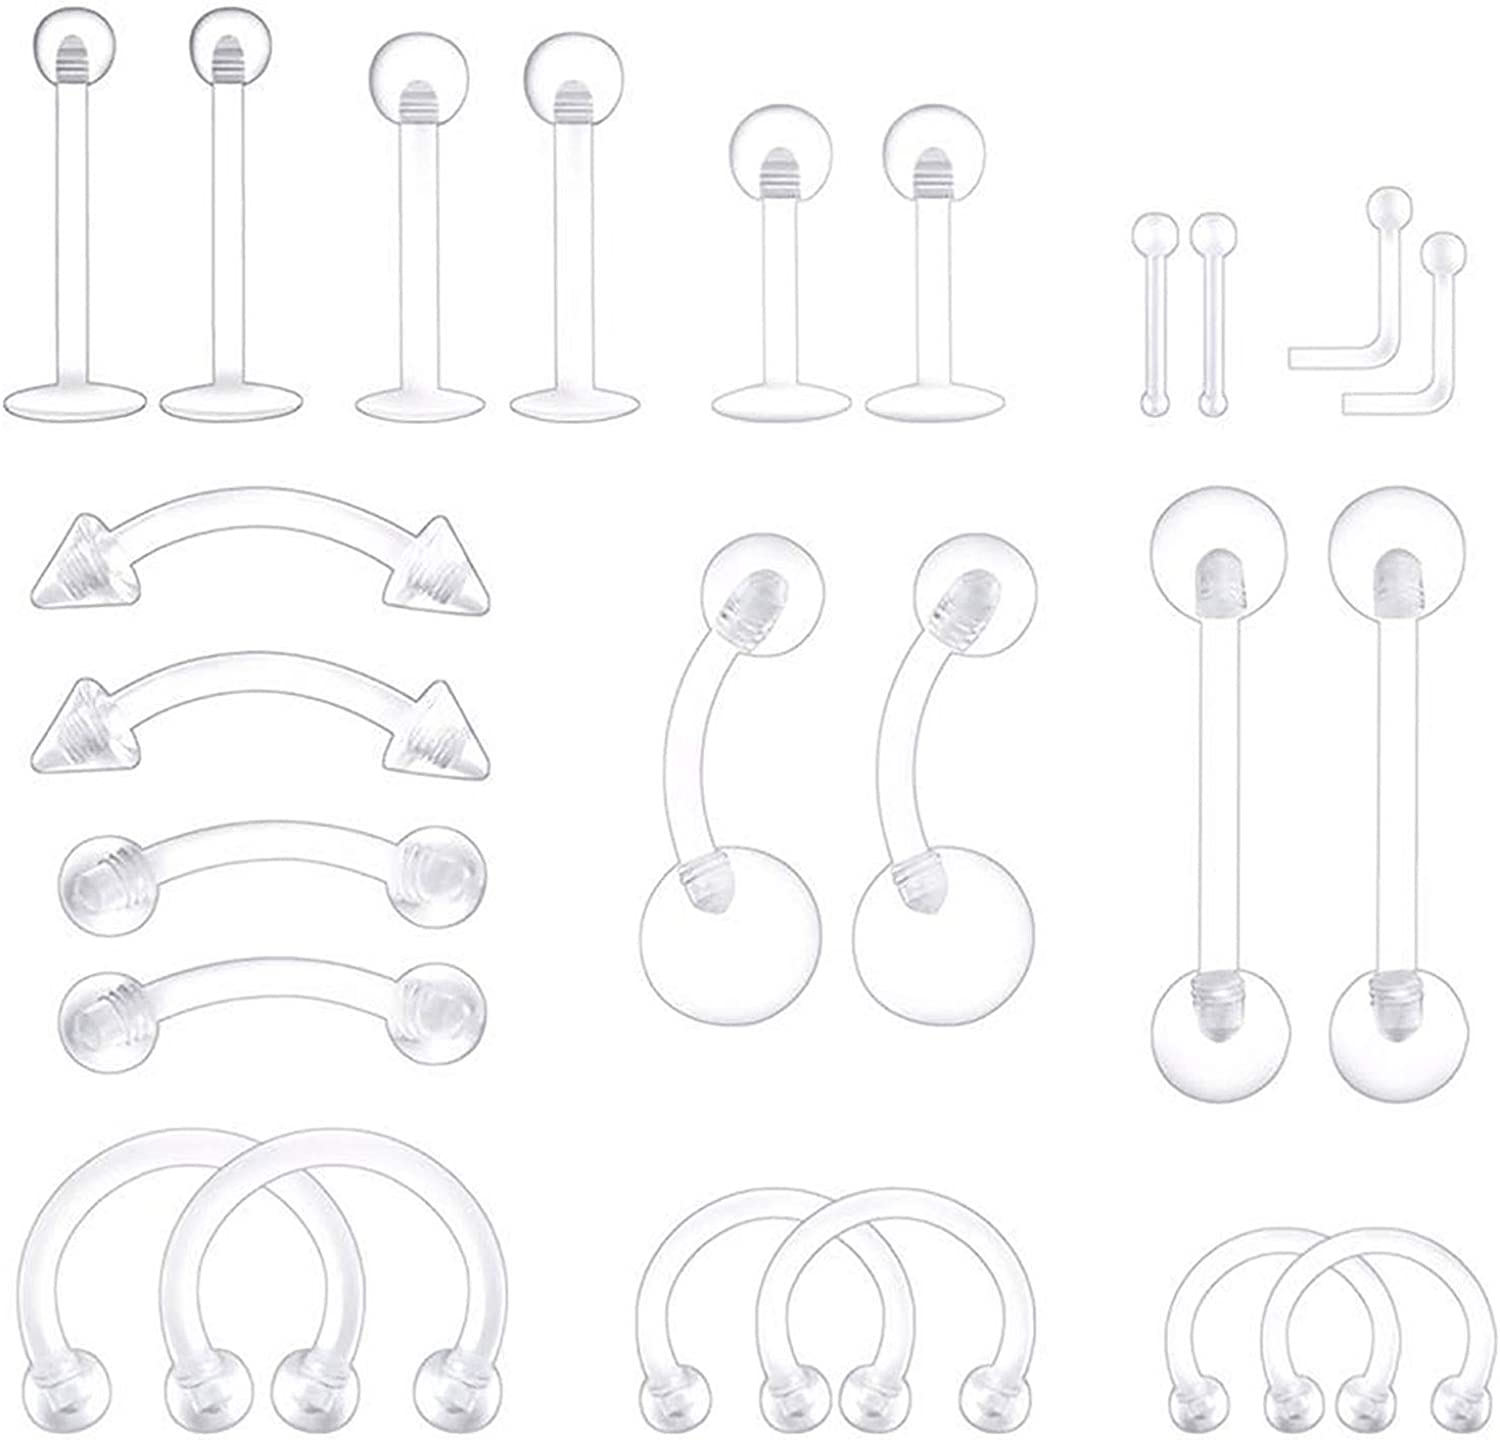 BodyJ4You 24PC Piercing Retainer Set Clear Flexible Plastic 14G 16G 18G 20G Belly Nose Tongue Lip